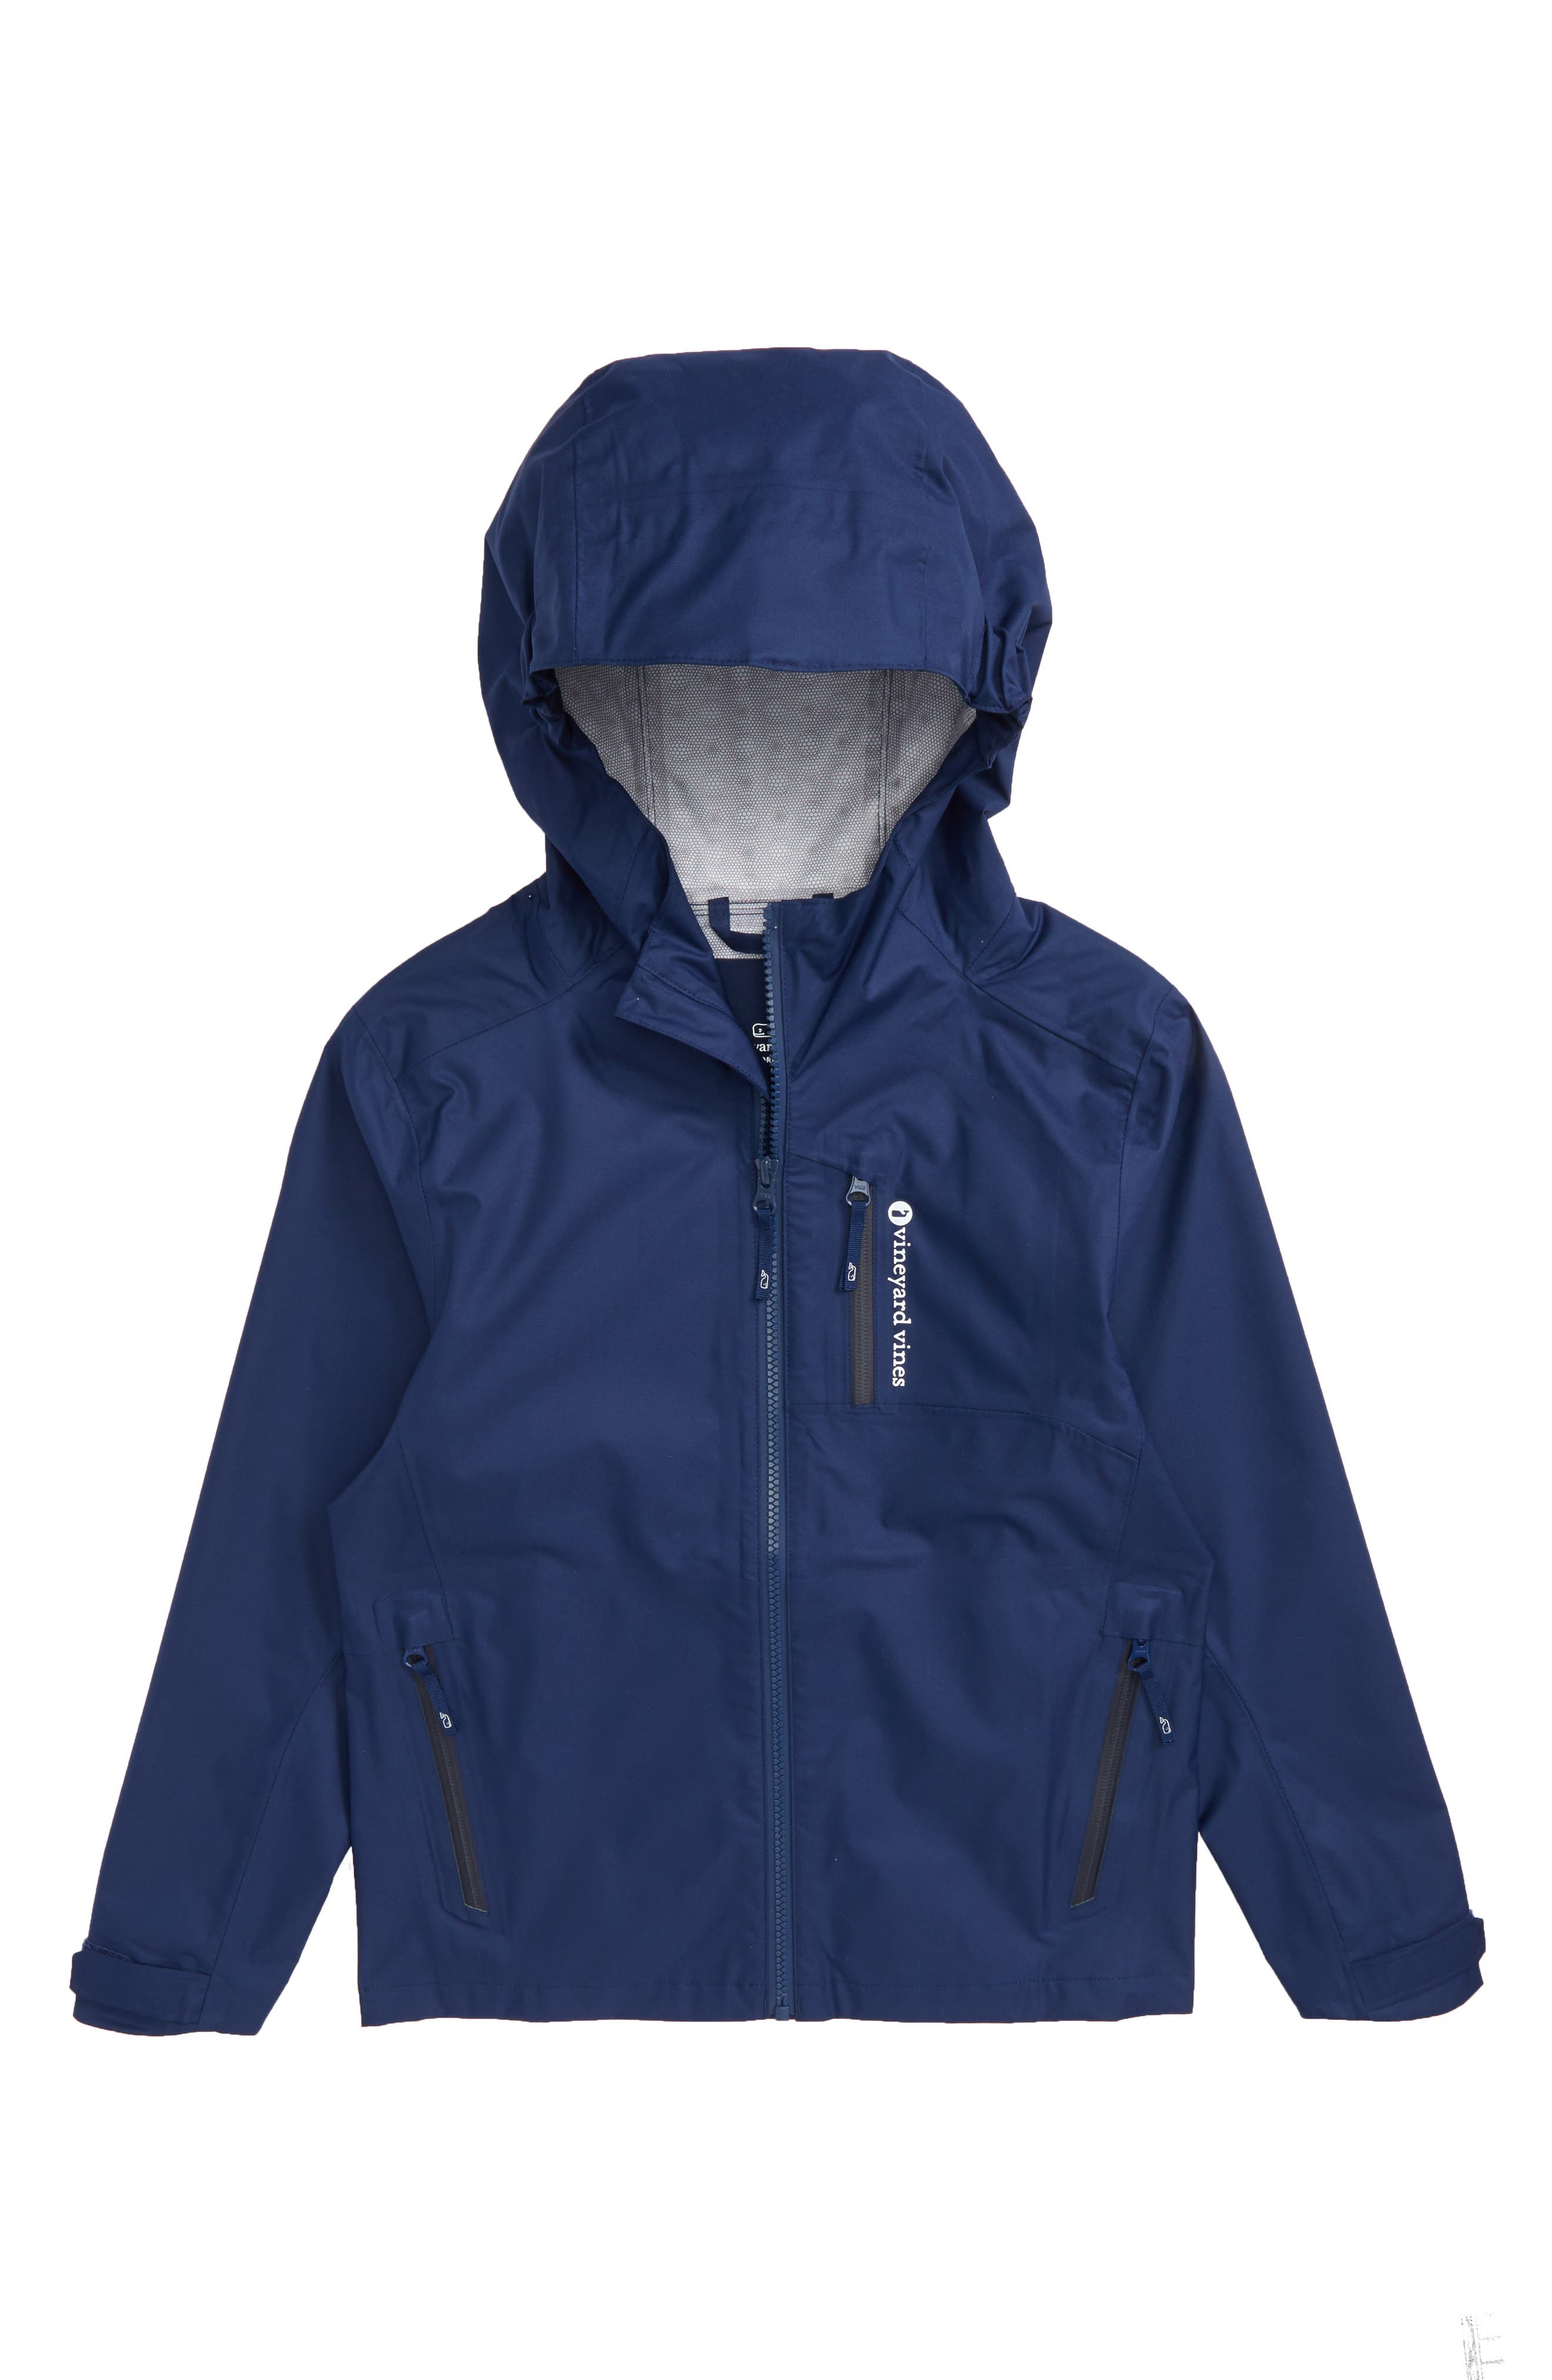 New Hooded Rain Jacket,                             Main thumbnail 1, color,                             Deep Bay